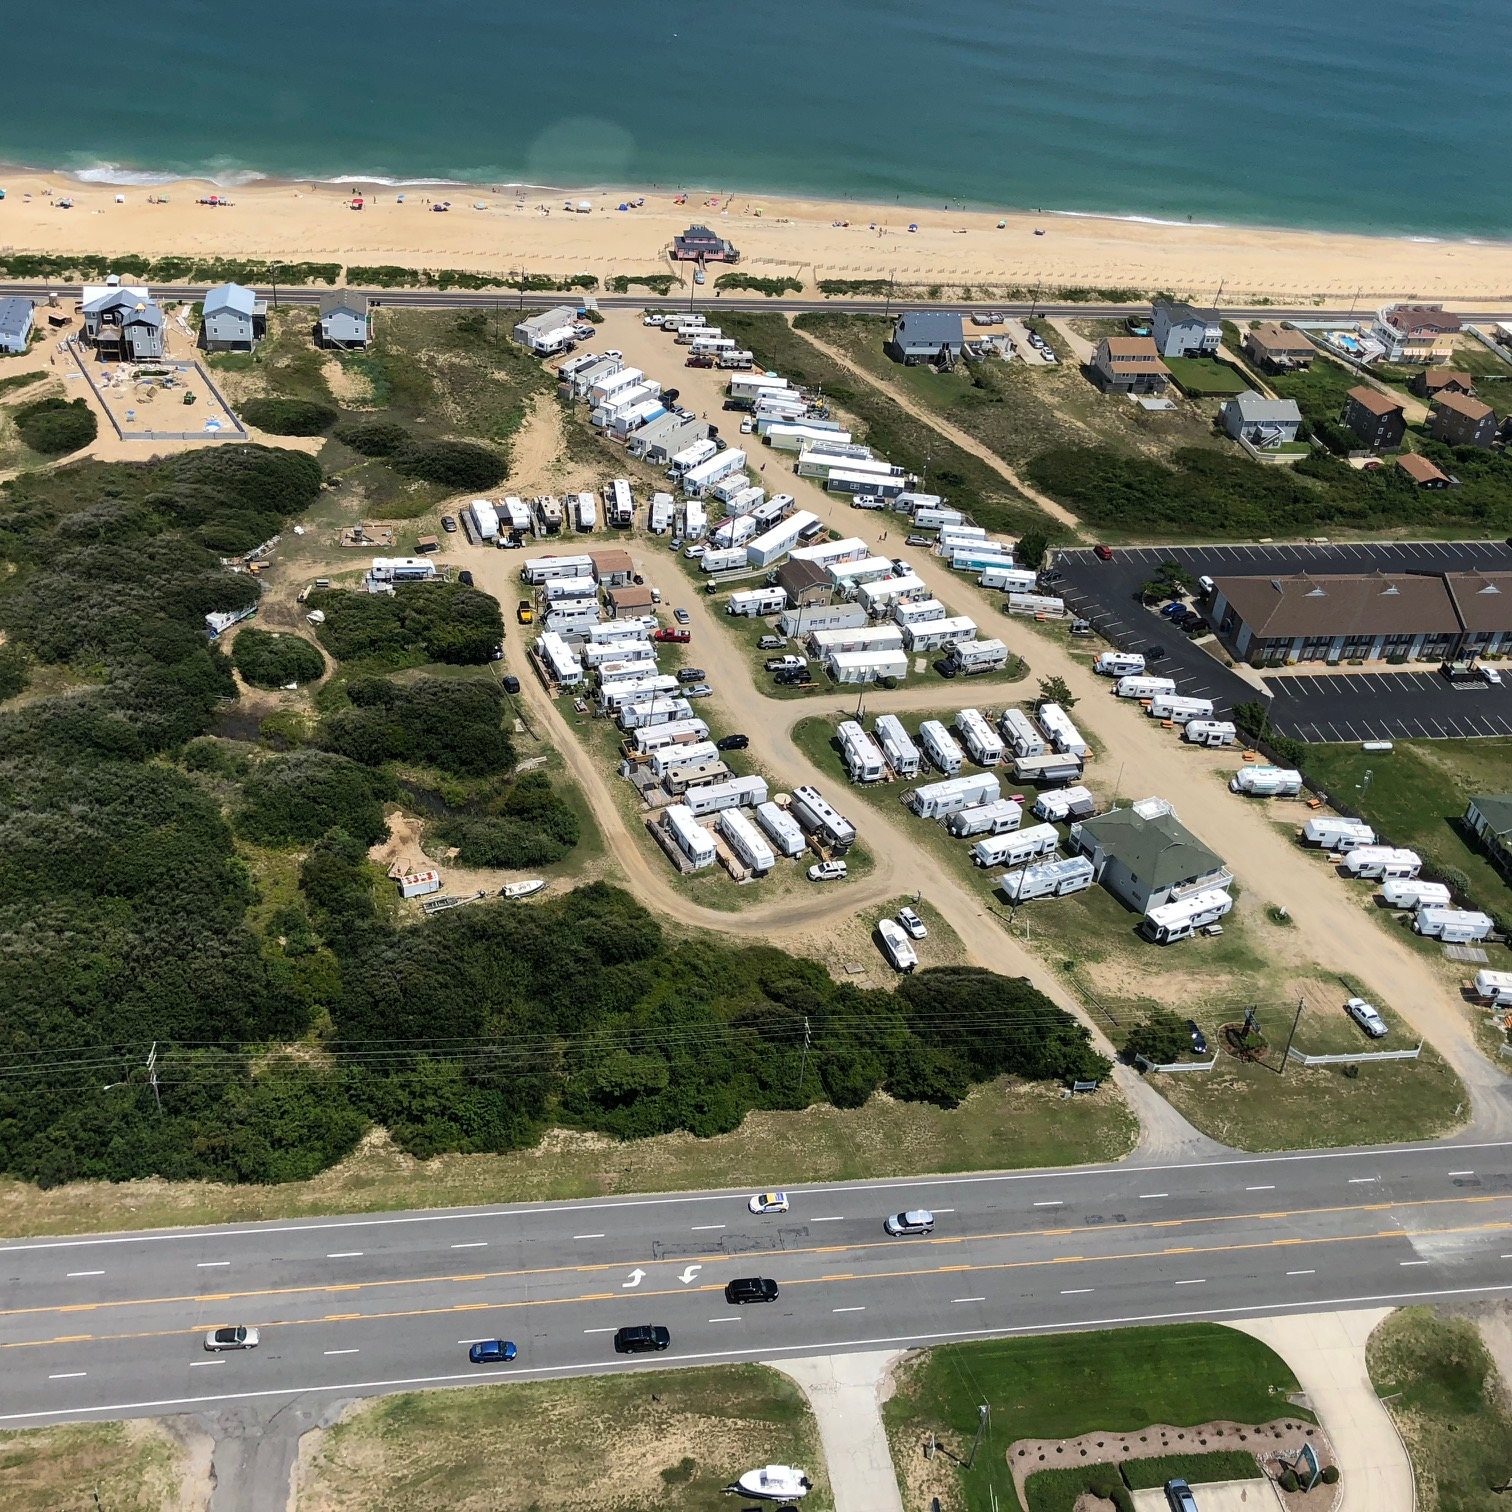 Aerial view of the RV park